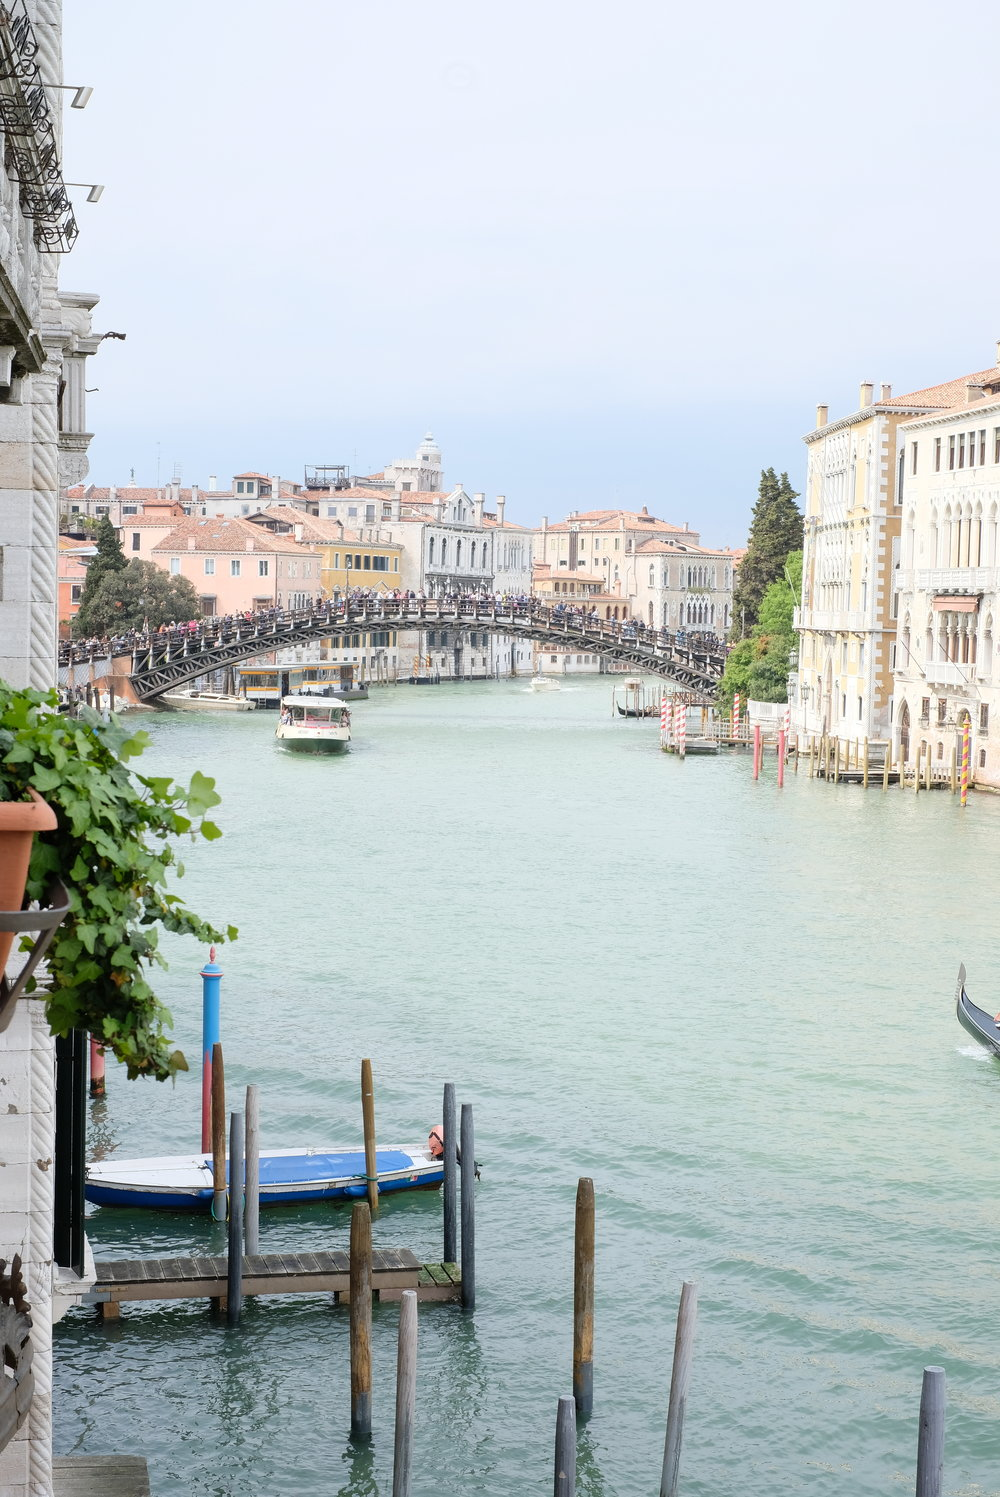 Views of the Grand Canal and the Ponte dell'Accademia (bridge) from our palazzo in Venice, Italy